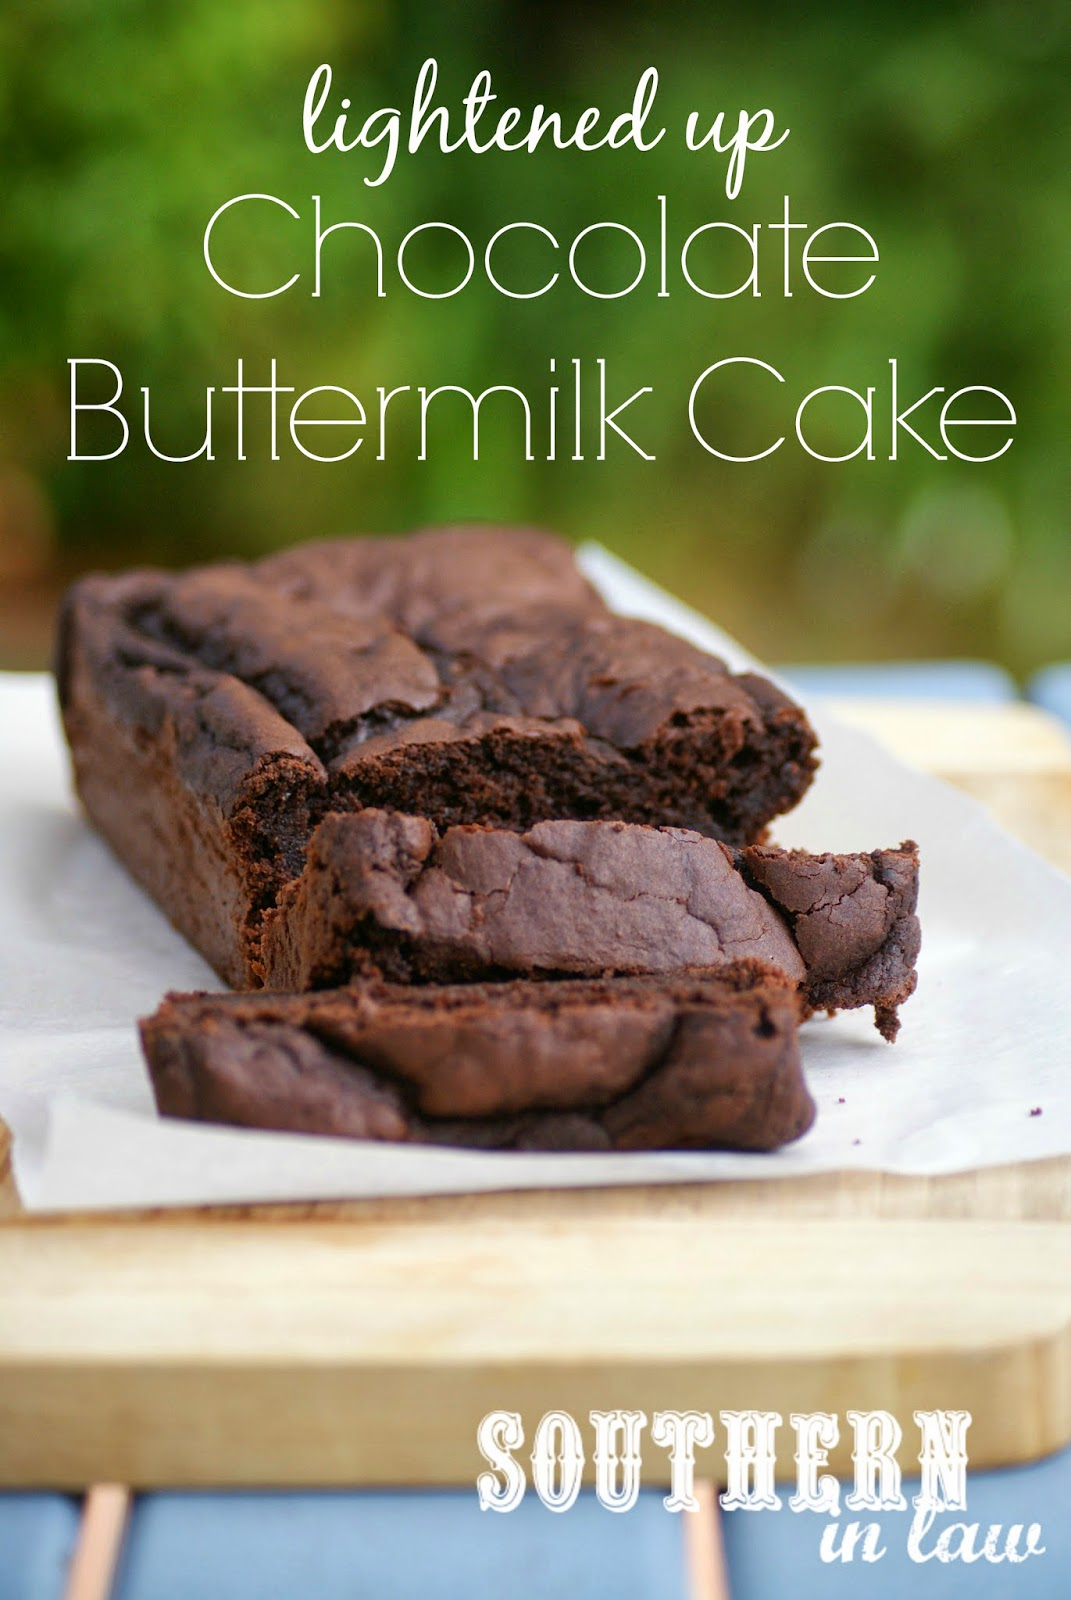 Low Fat Buttermilk Chocolate Cake Recipe - Gluten free, healthy, low sugar, lightened up